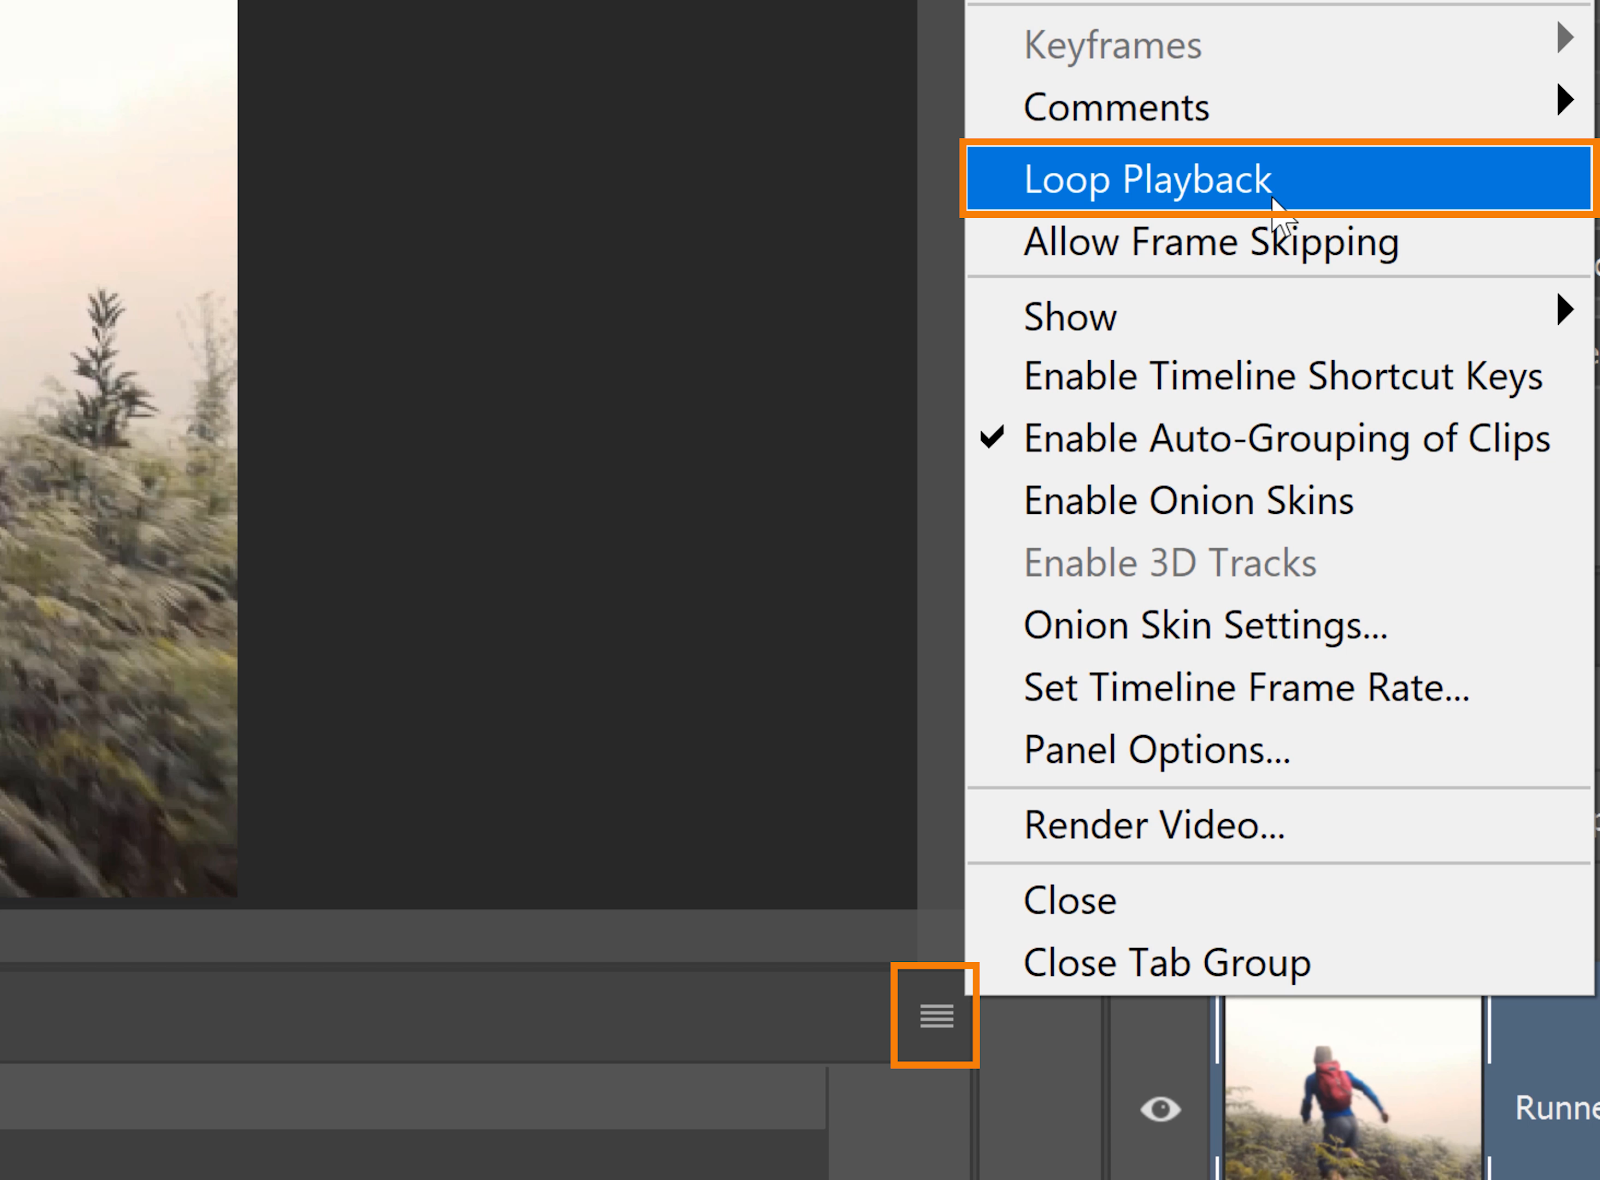 Click on the Options icon > Loop Playback.